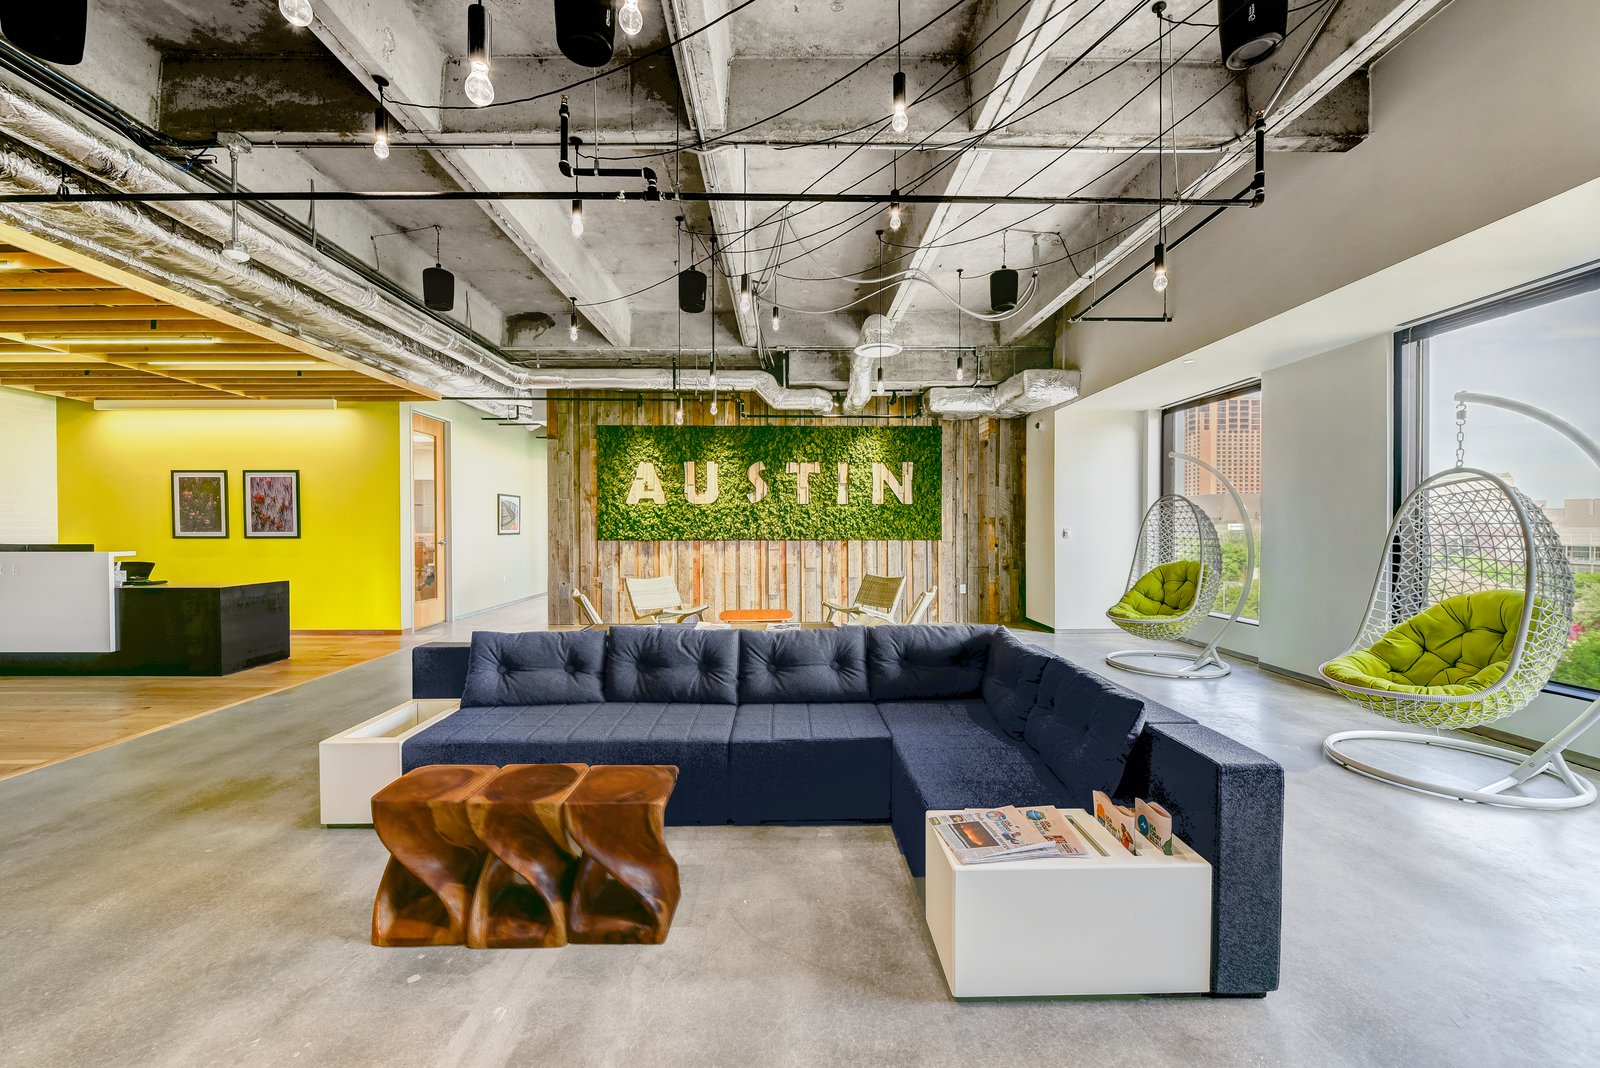 The locally sourced reclaimed wooden wall and moss sign by Articulture bring the outdoors inside in Techspace Austin's office.